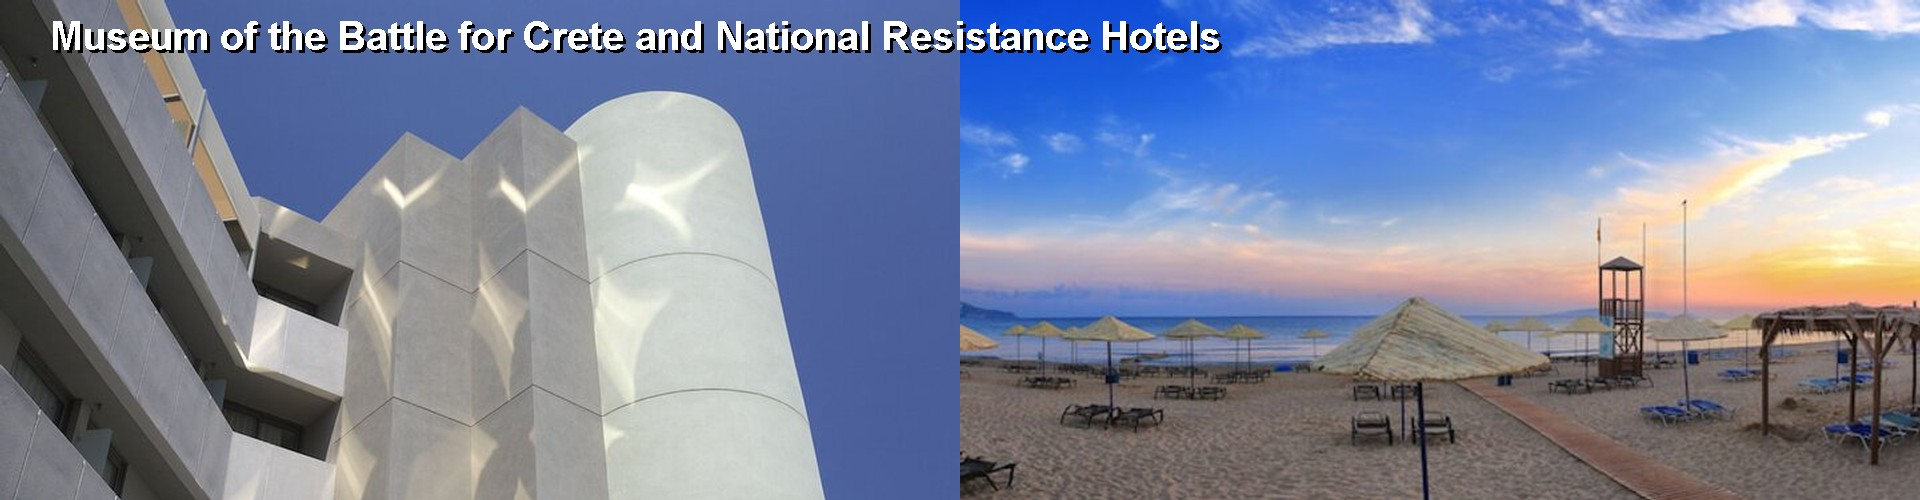 5 Best Hotels near Museum of the Battle for Crete and National Resistance